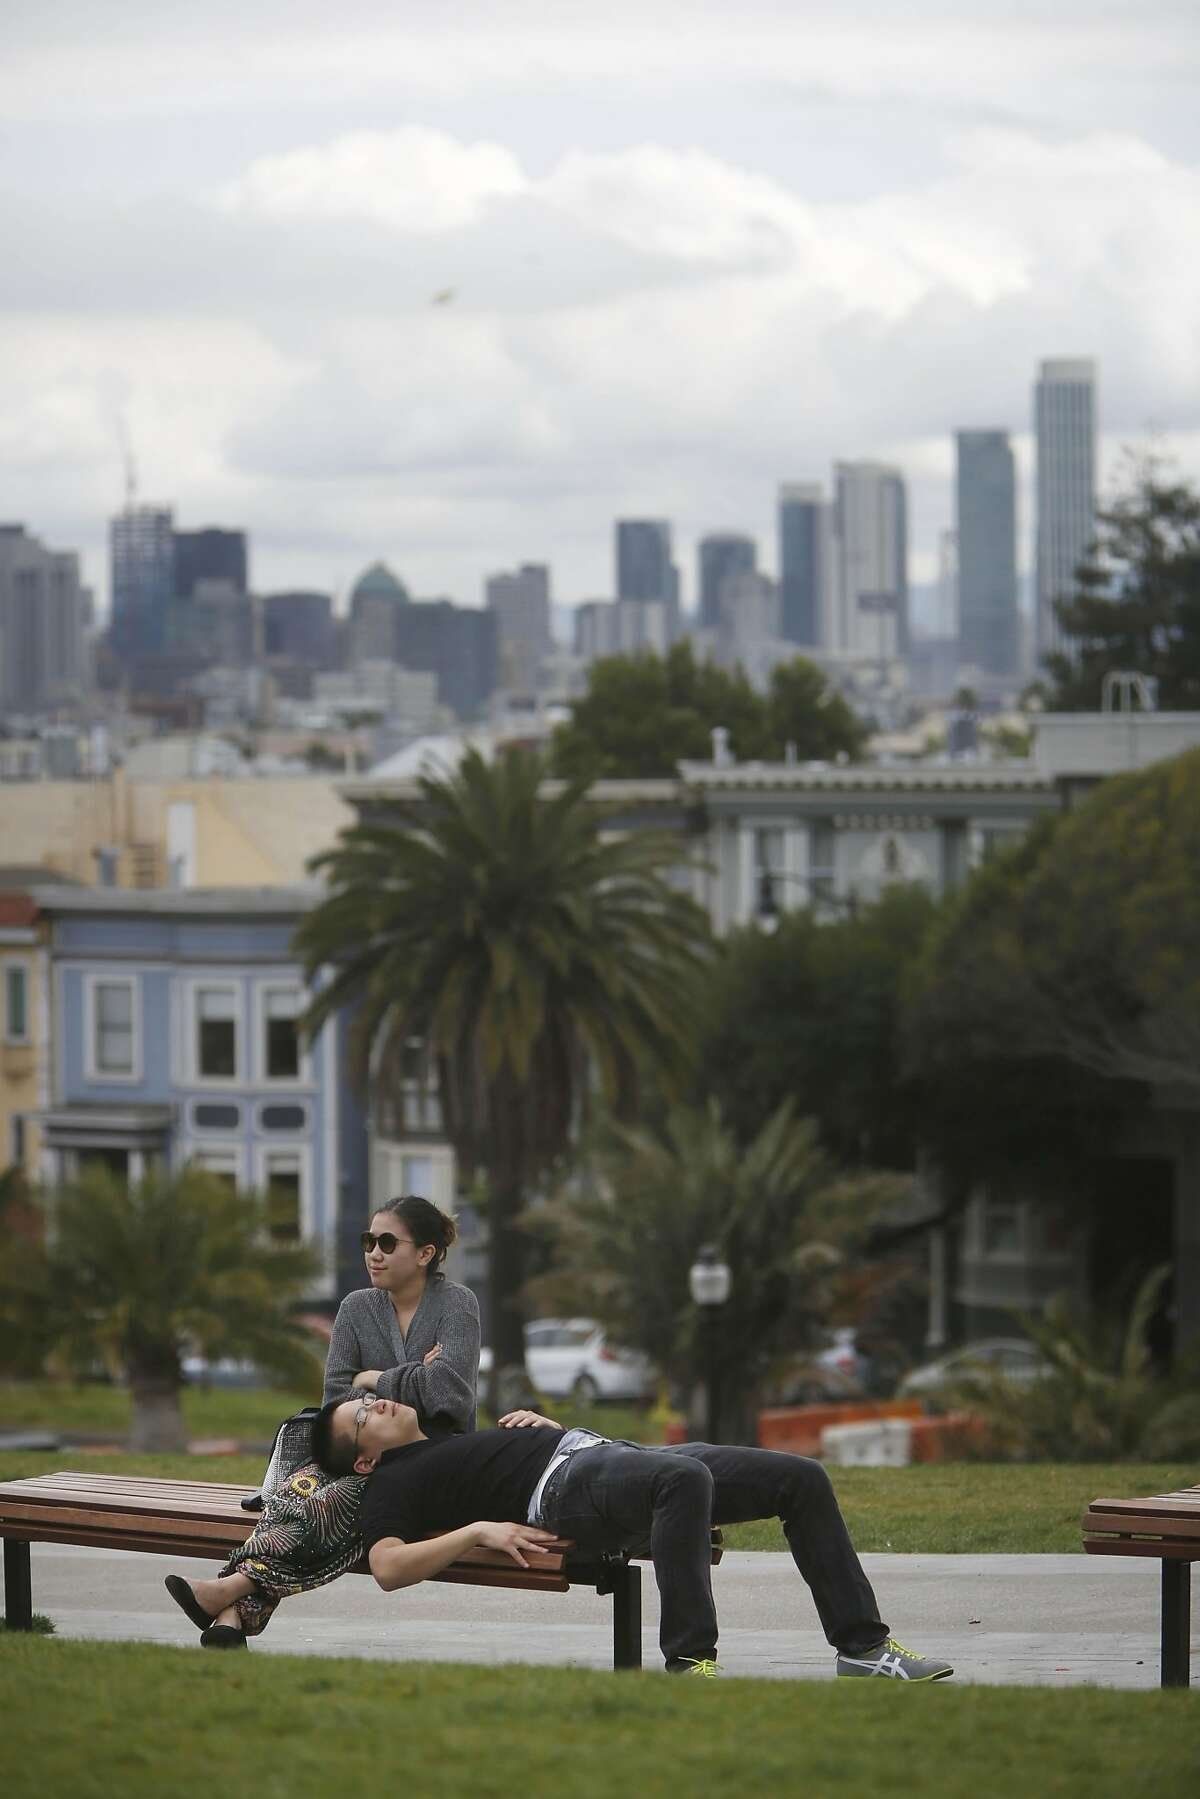 Emiz Zhong (l to r) and Elvin He, both of New York, relax in Dolores Park after arriving from Los Angeles at 5 A.M. while on vacation as they visit at Dolores Park on Thursday, April 21, 2016 in San Francisco, California.